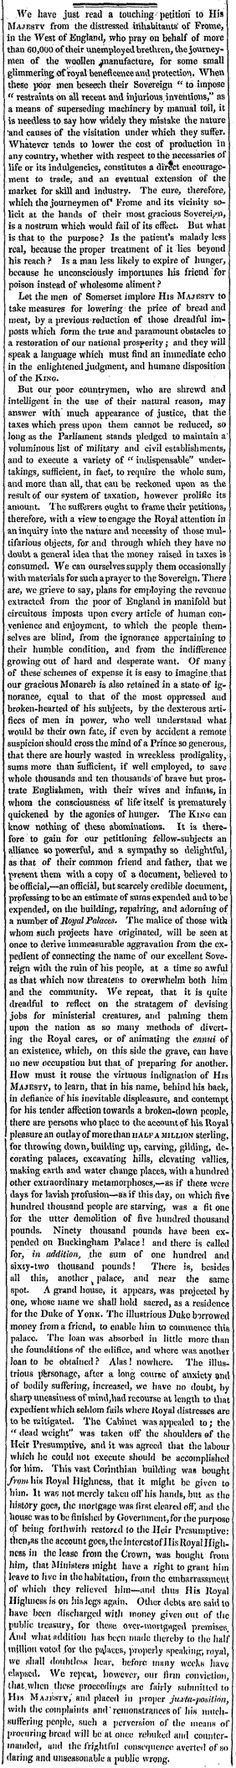 10 Oct 1826: Frome, a Contrast: Petition to the King and the Royal Building (10 Oct 1826)